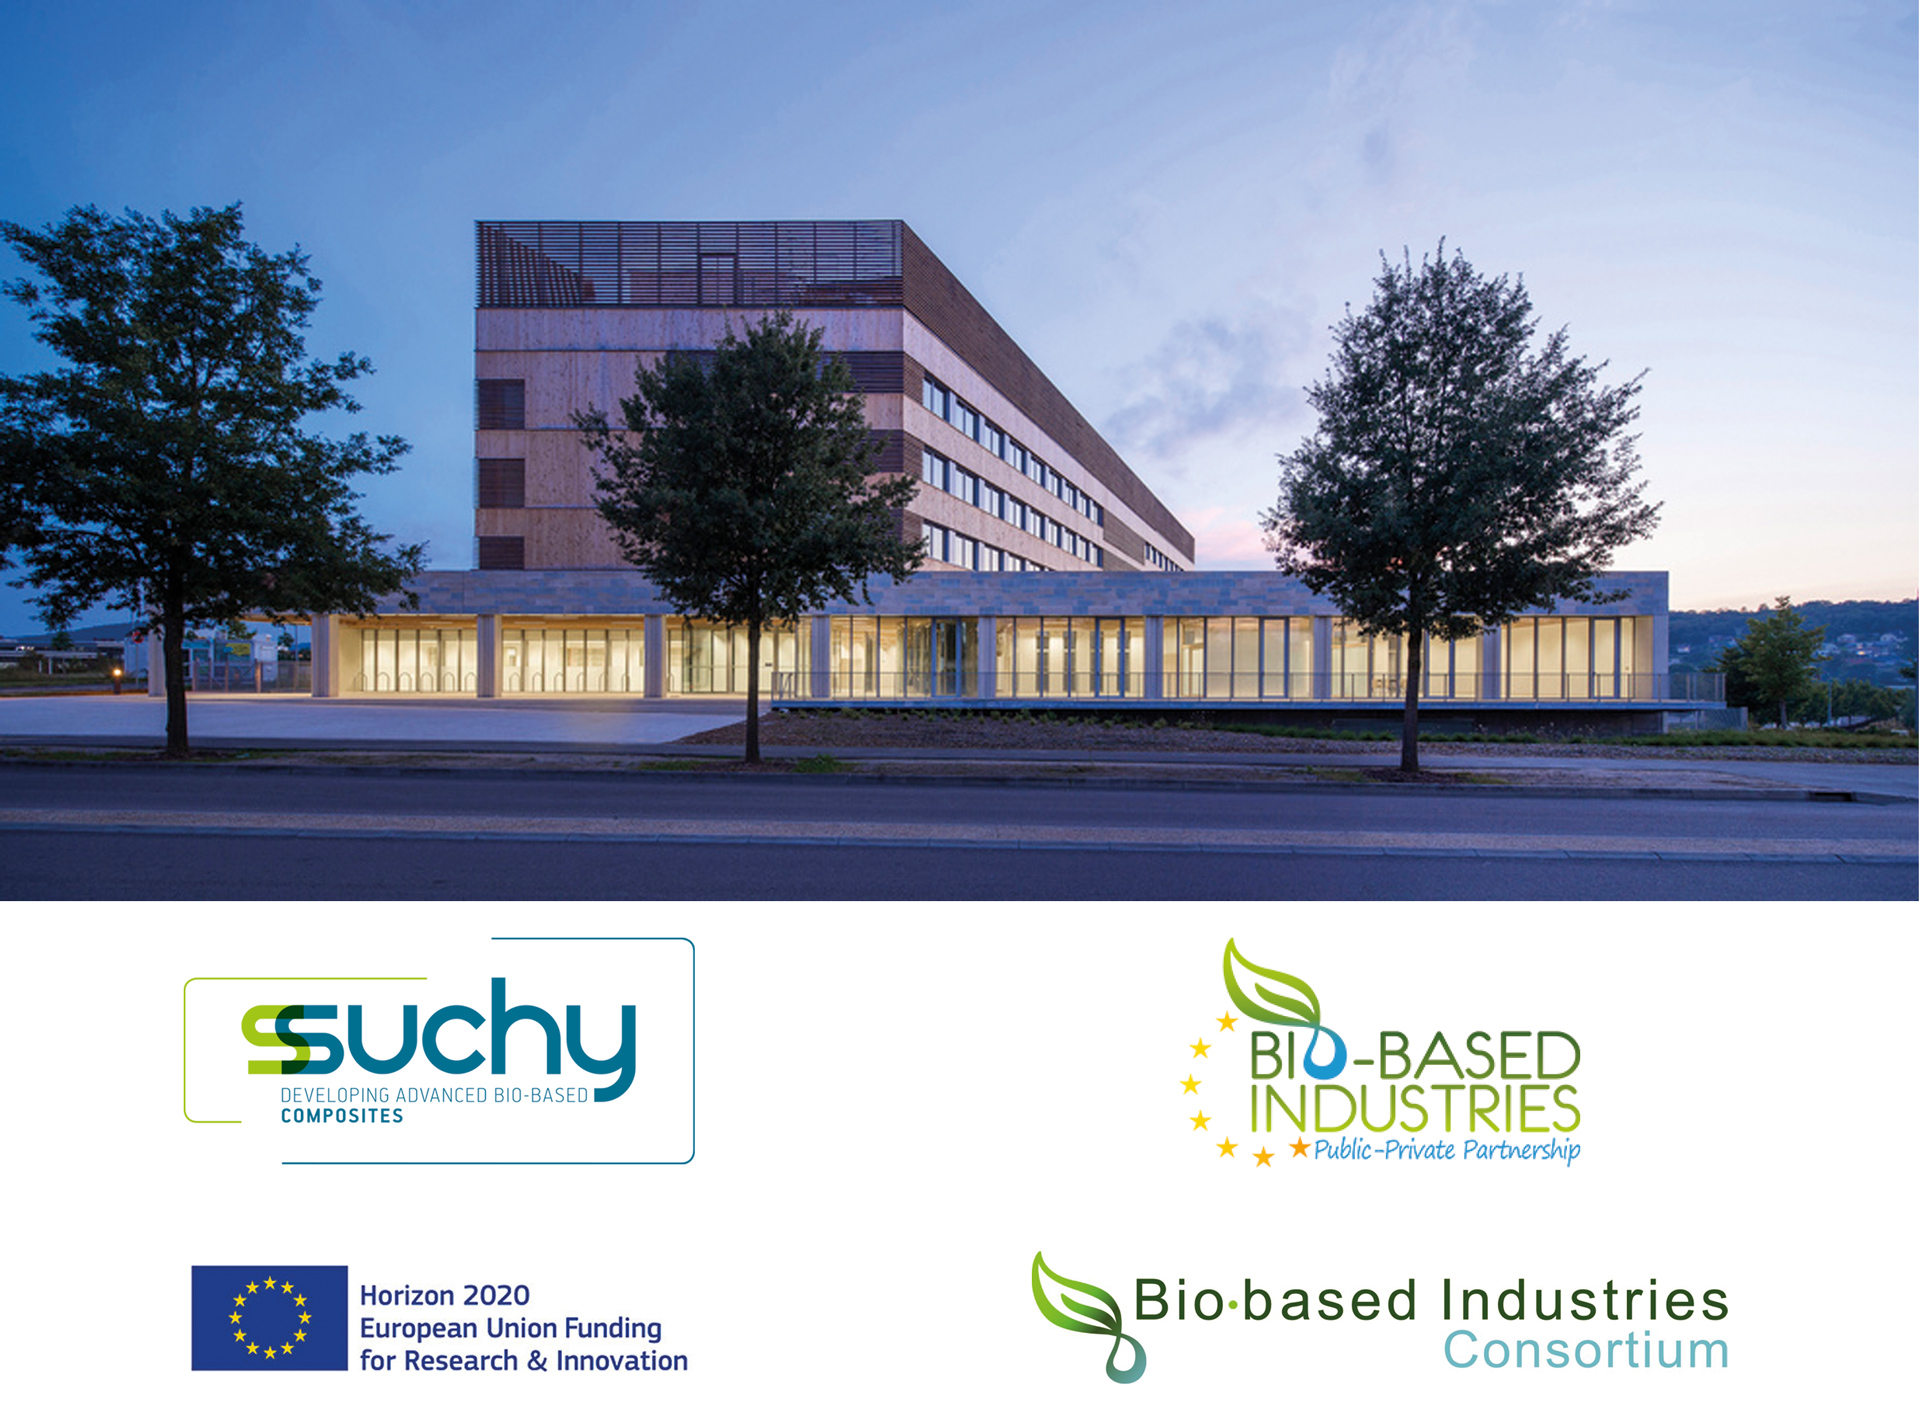 Wilson Benesch Collaborative Research & Development Project with SSUCHY into Biocomposites and Bio-Based Polymers